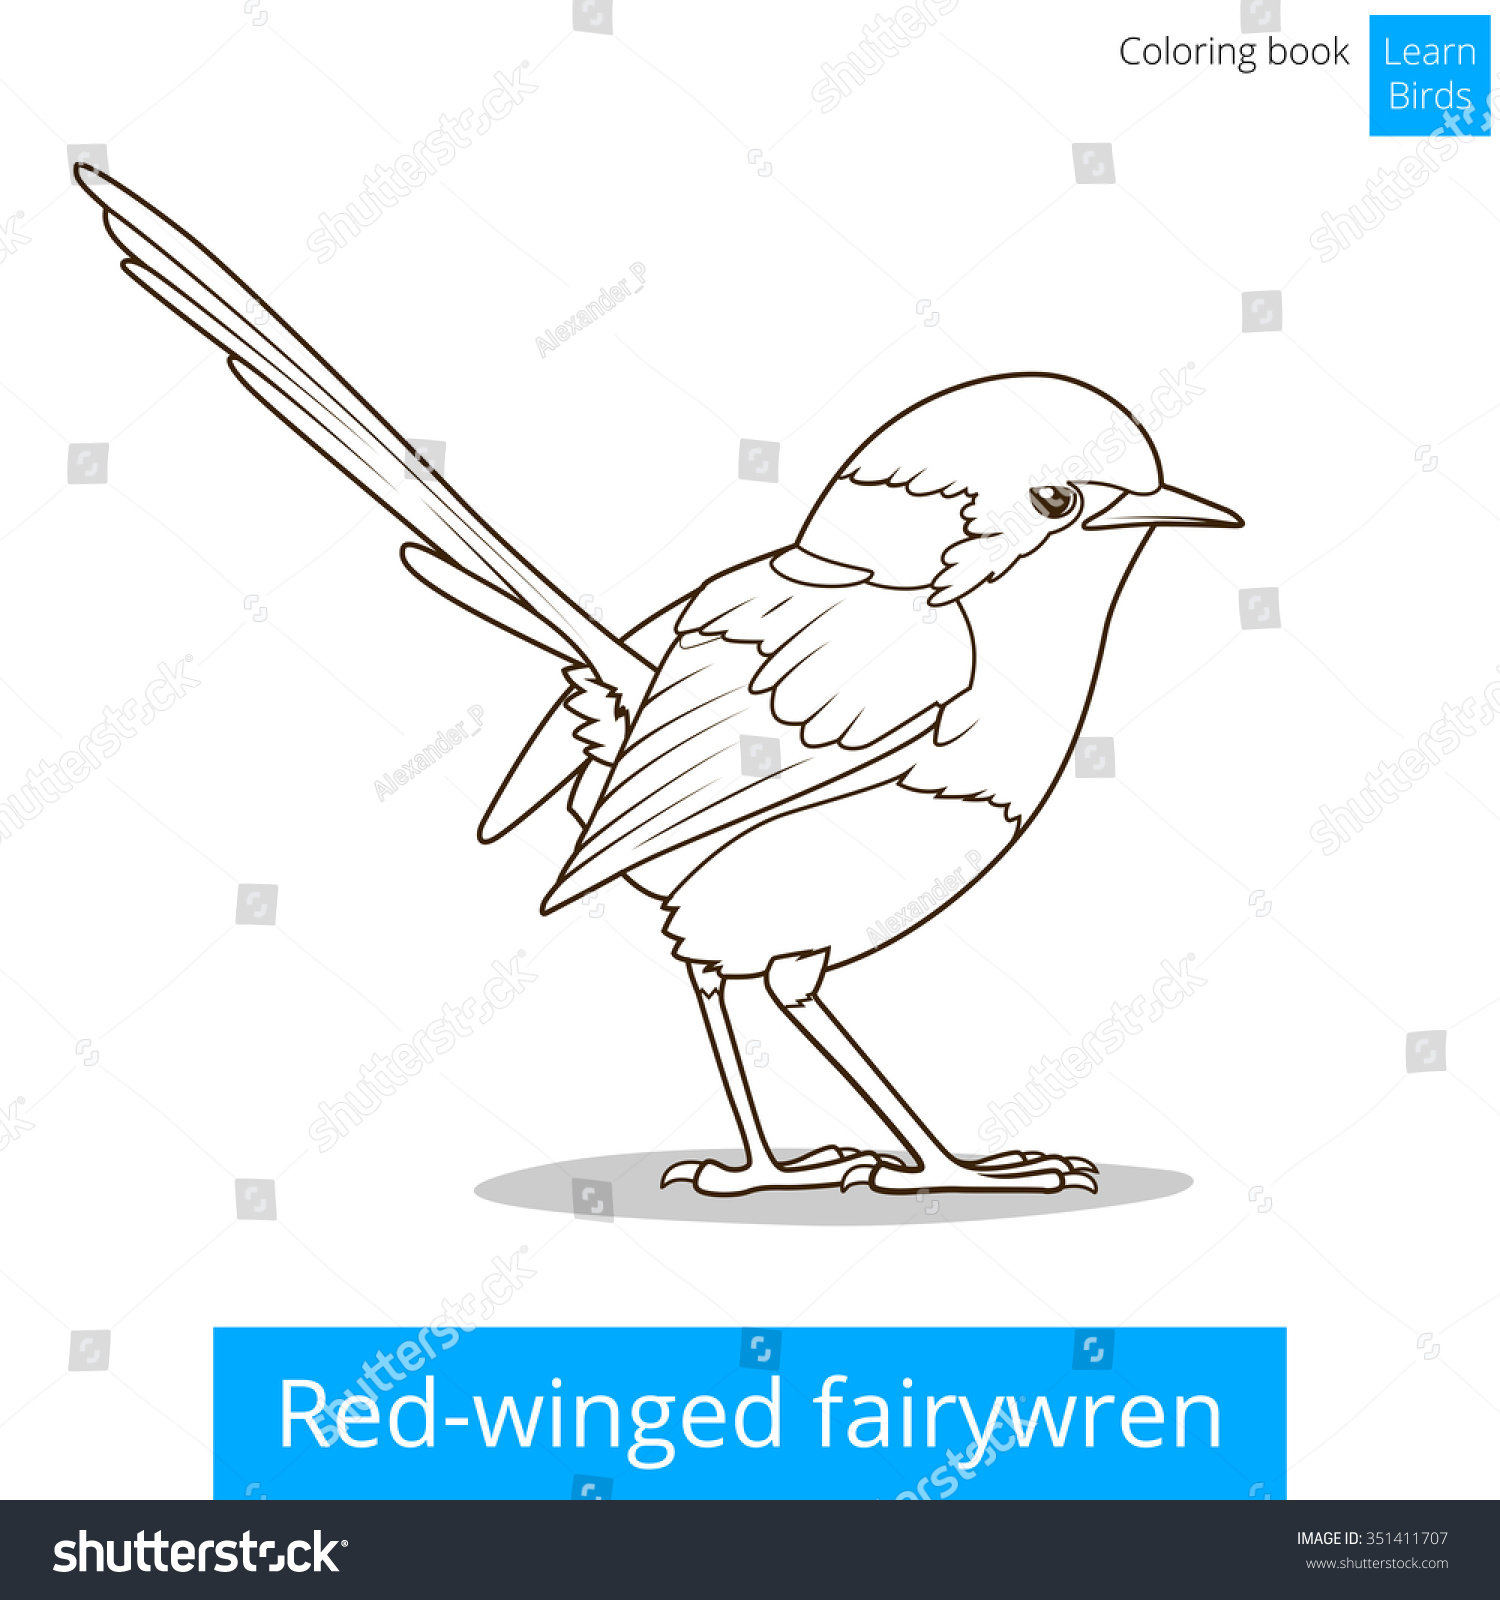 Red Winged Fairywren Bird Learn Birds Educational Game Coloring Book Raster Illustration